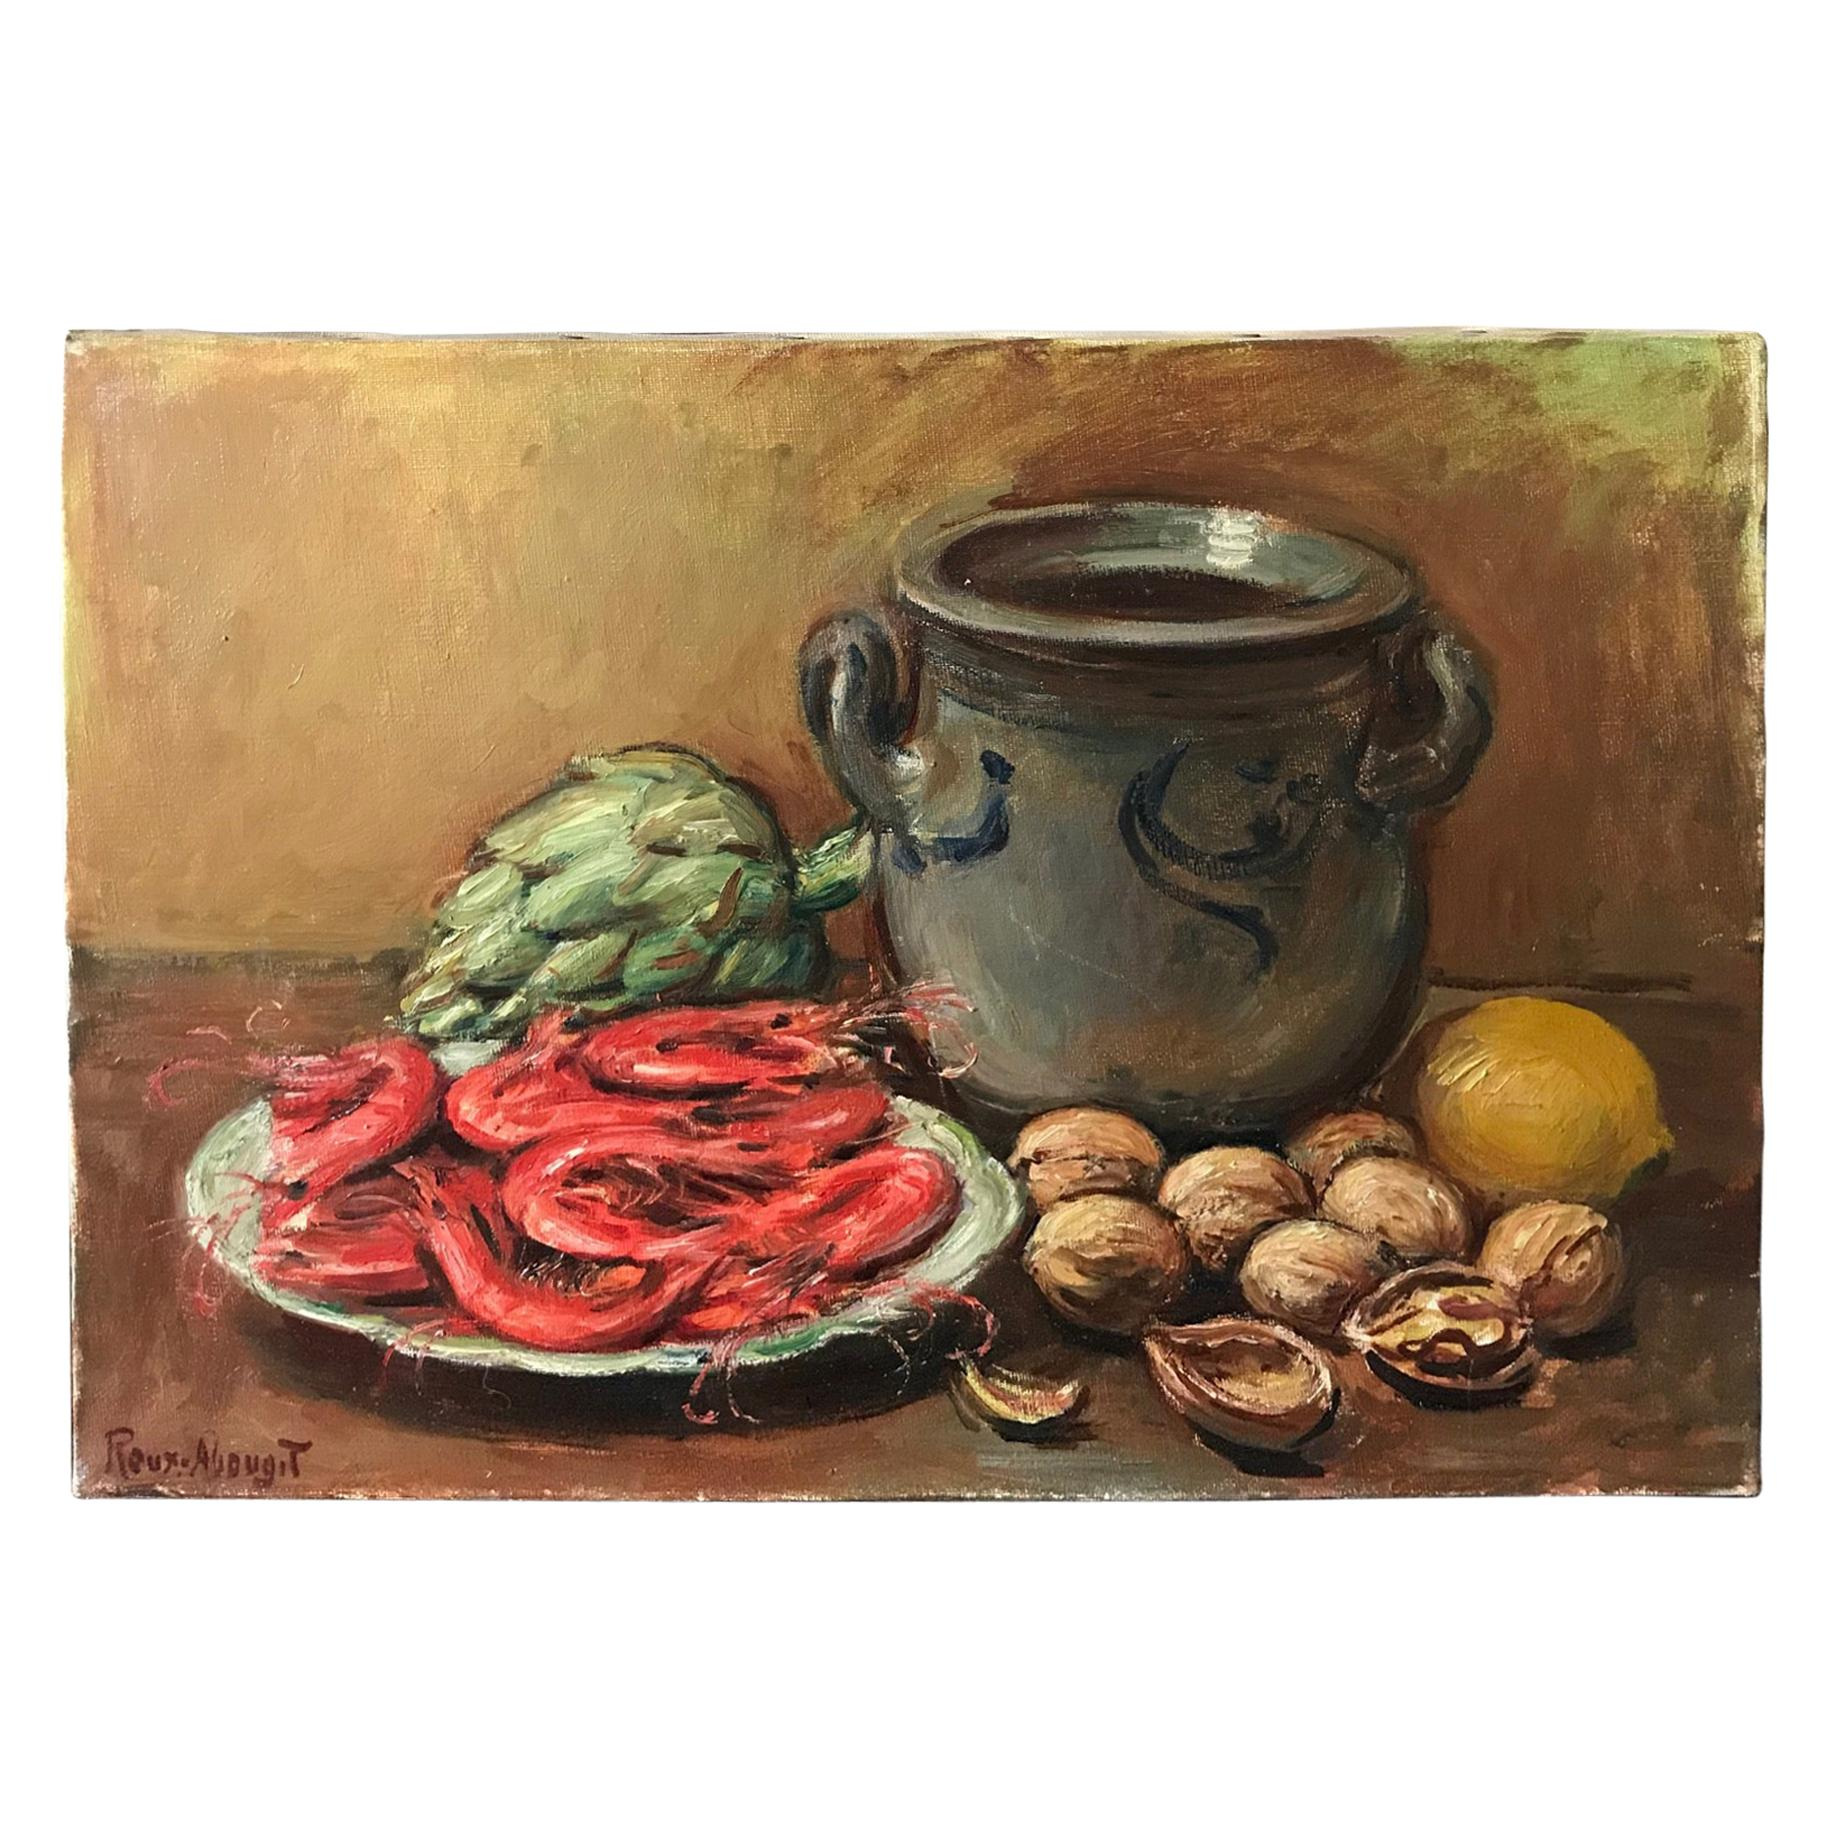 20th Century French Still-Life Oil on Canvas Signed Roux-Abougit, 1930s